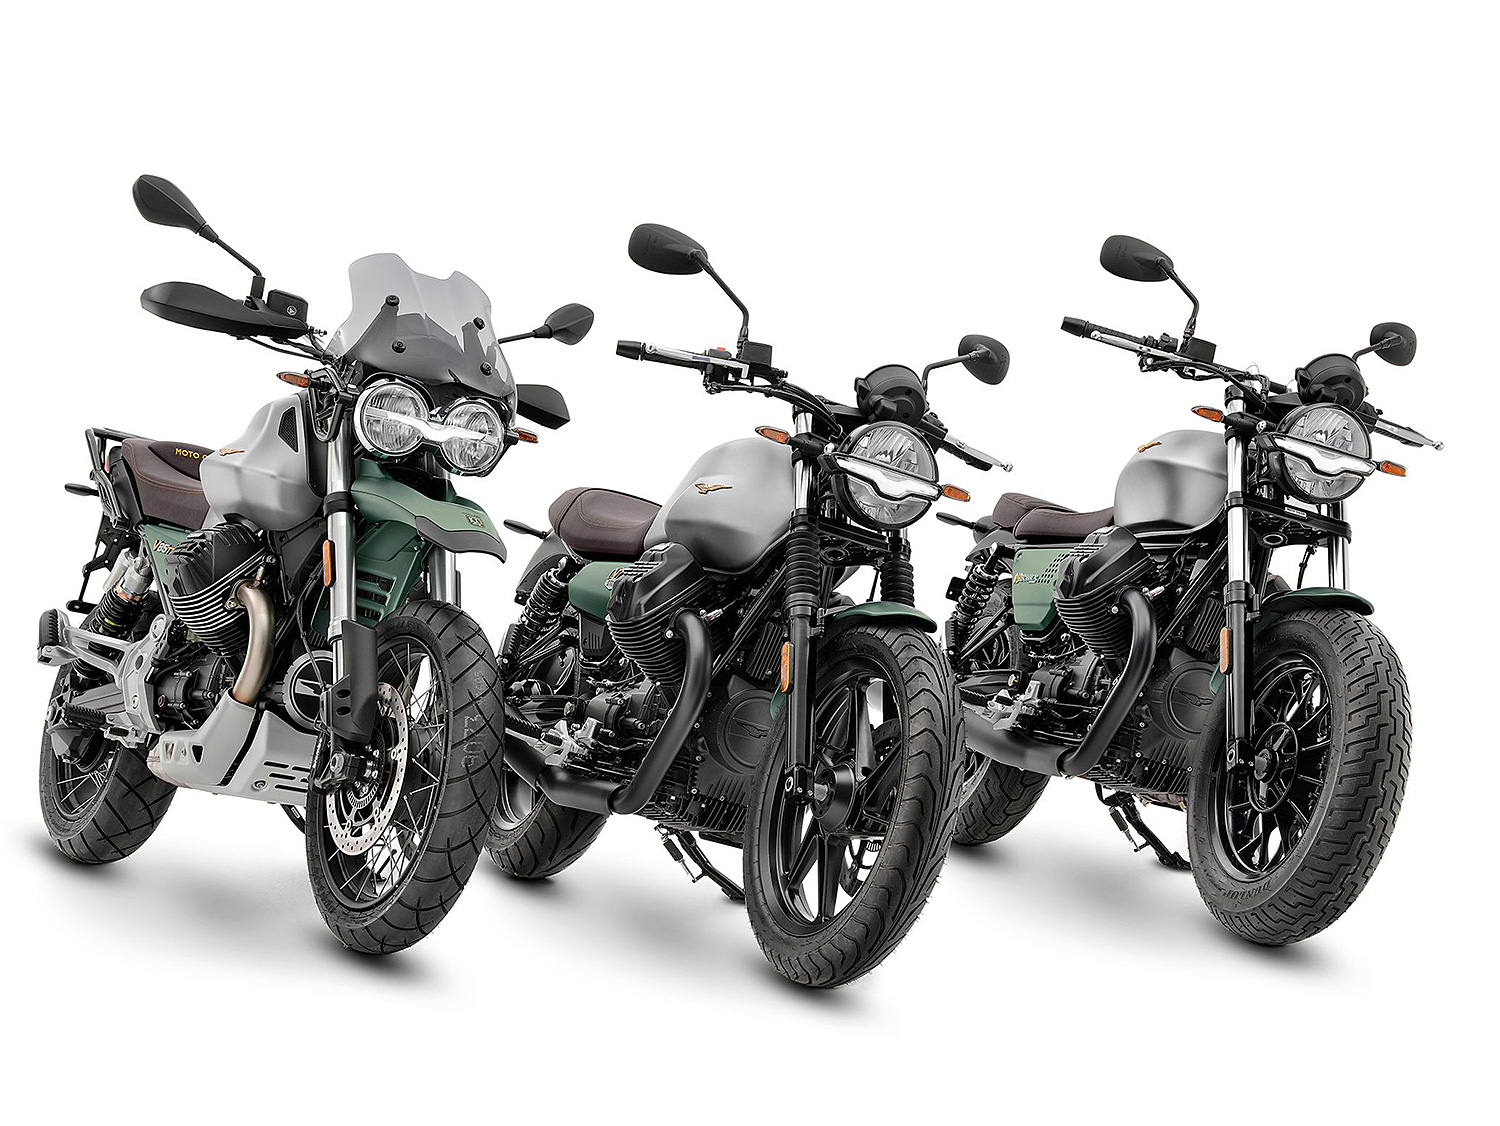 Moto Guzzi Turns 100 & Celebrates with a Range of Race-Inspired Rides at werd.com